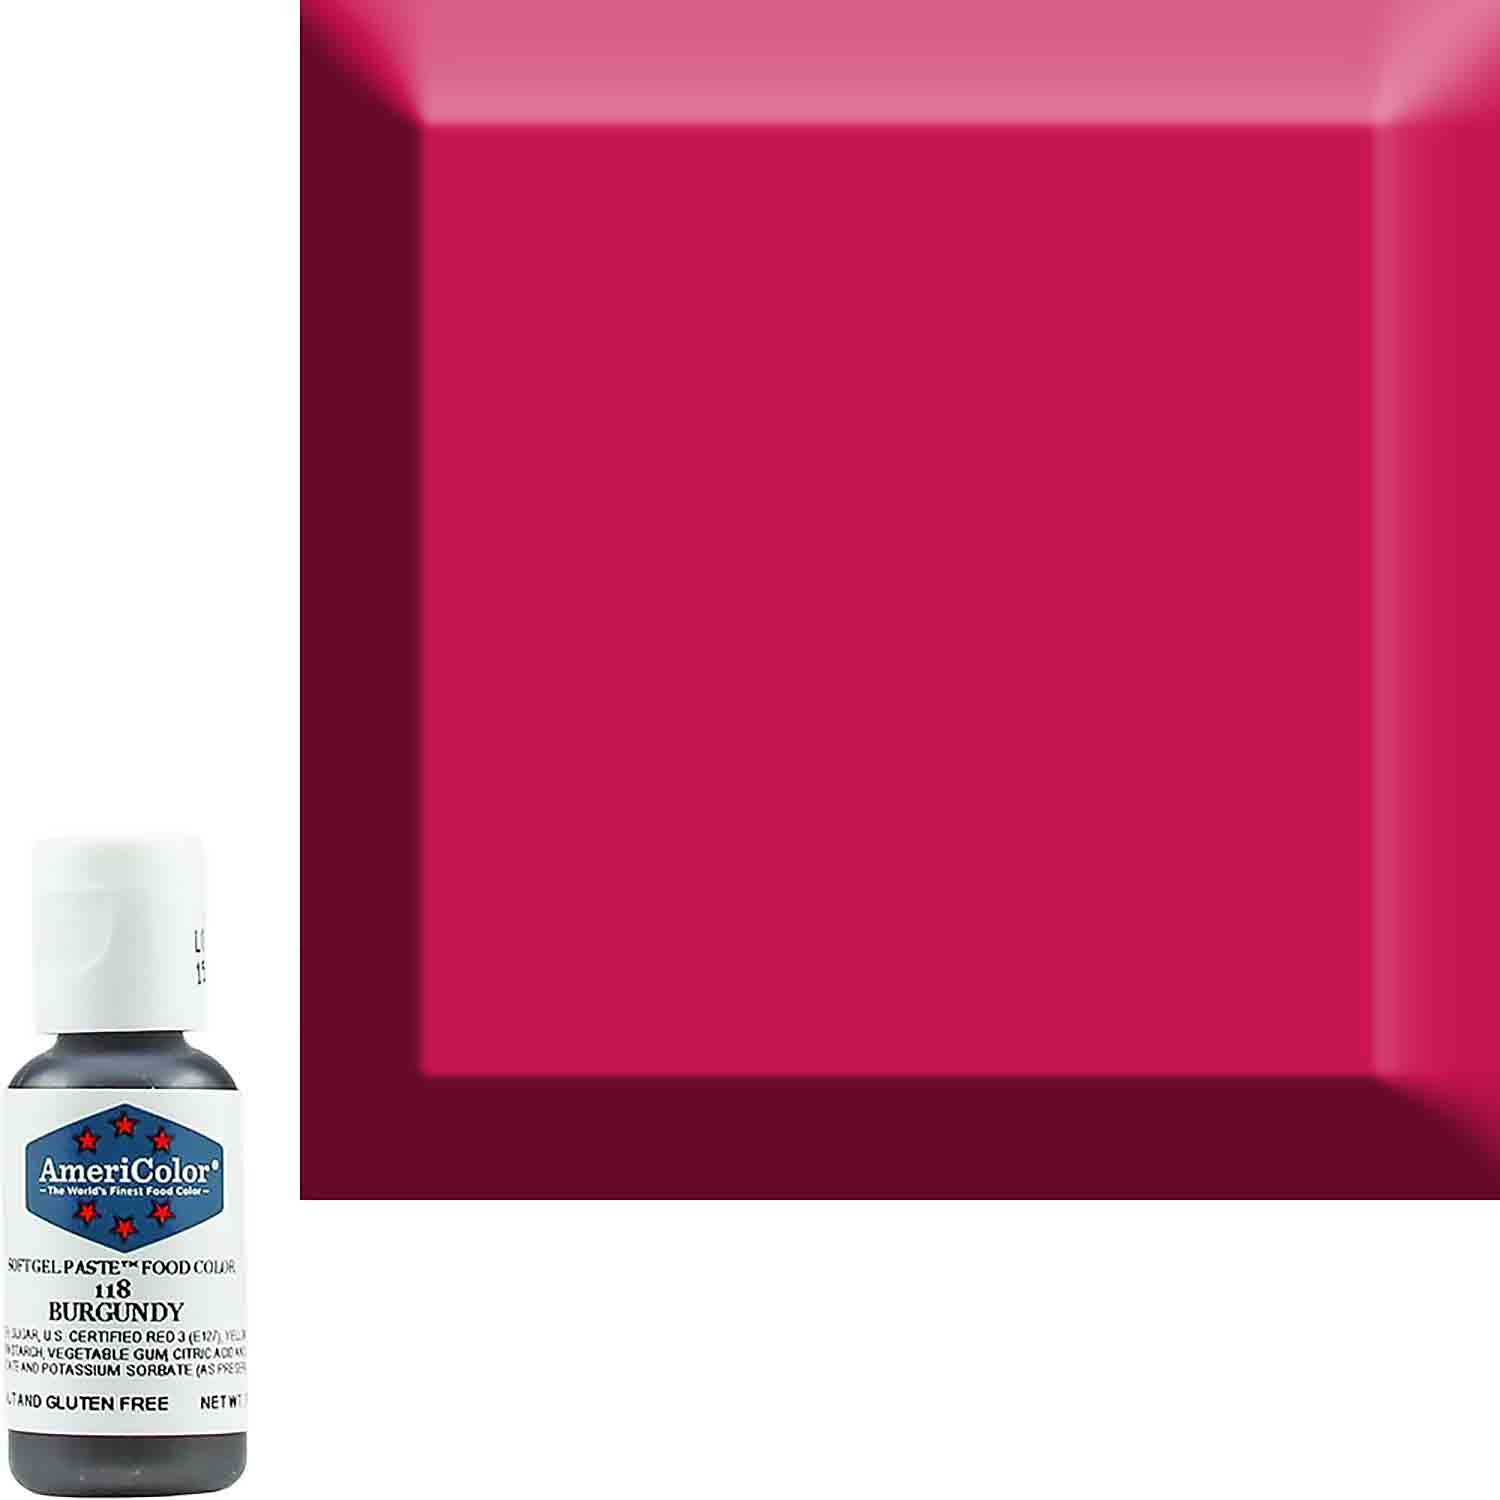 Burgundy Americolor® Soft Gel Paste Food Color (Old # 41-8018)